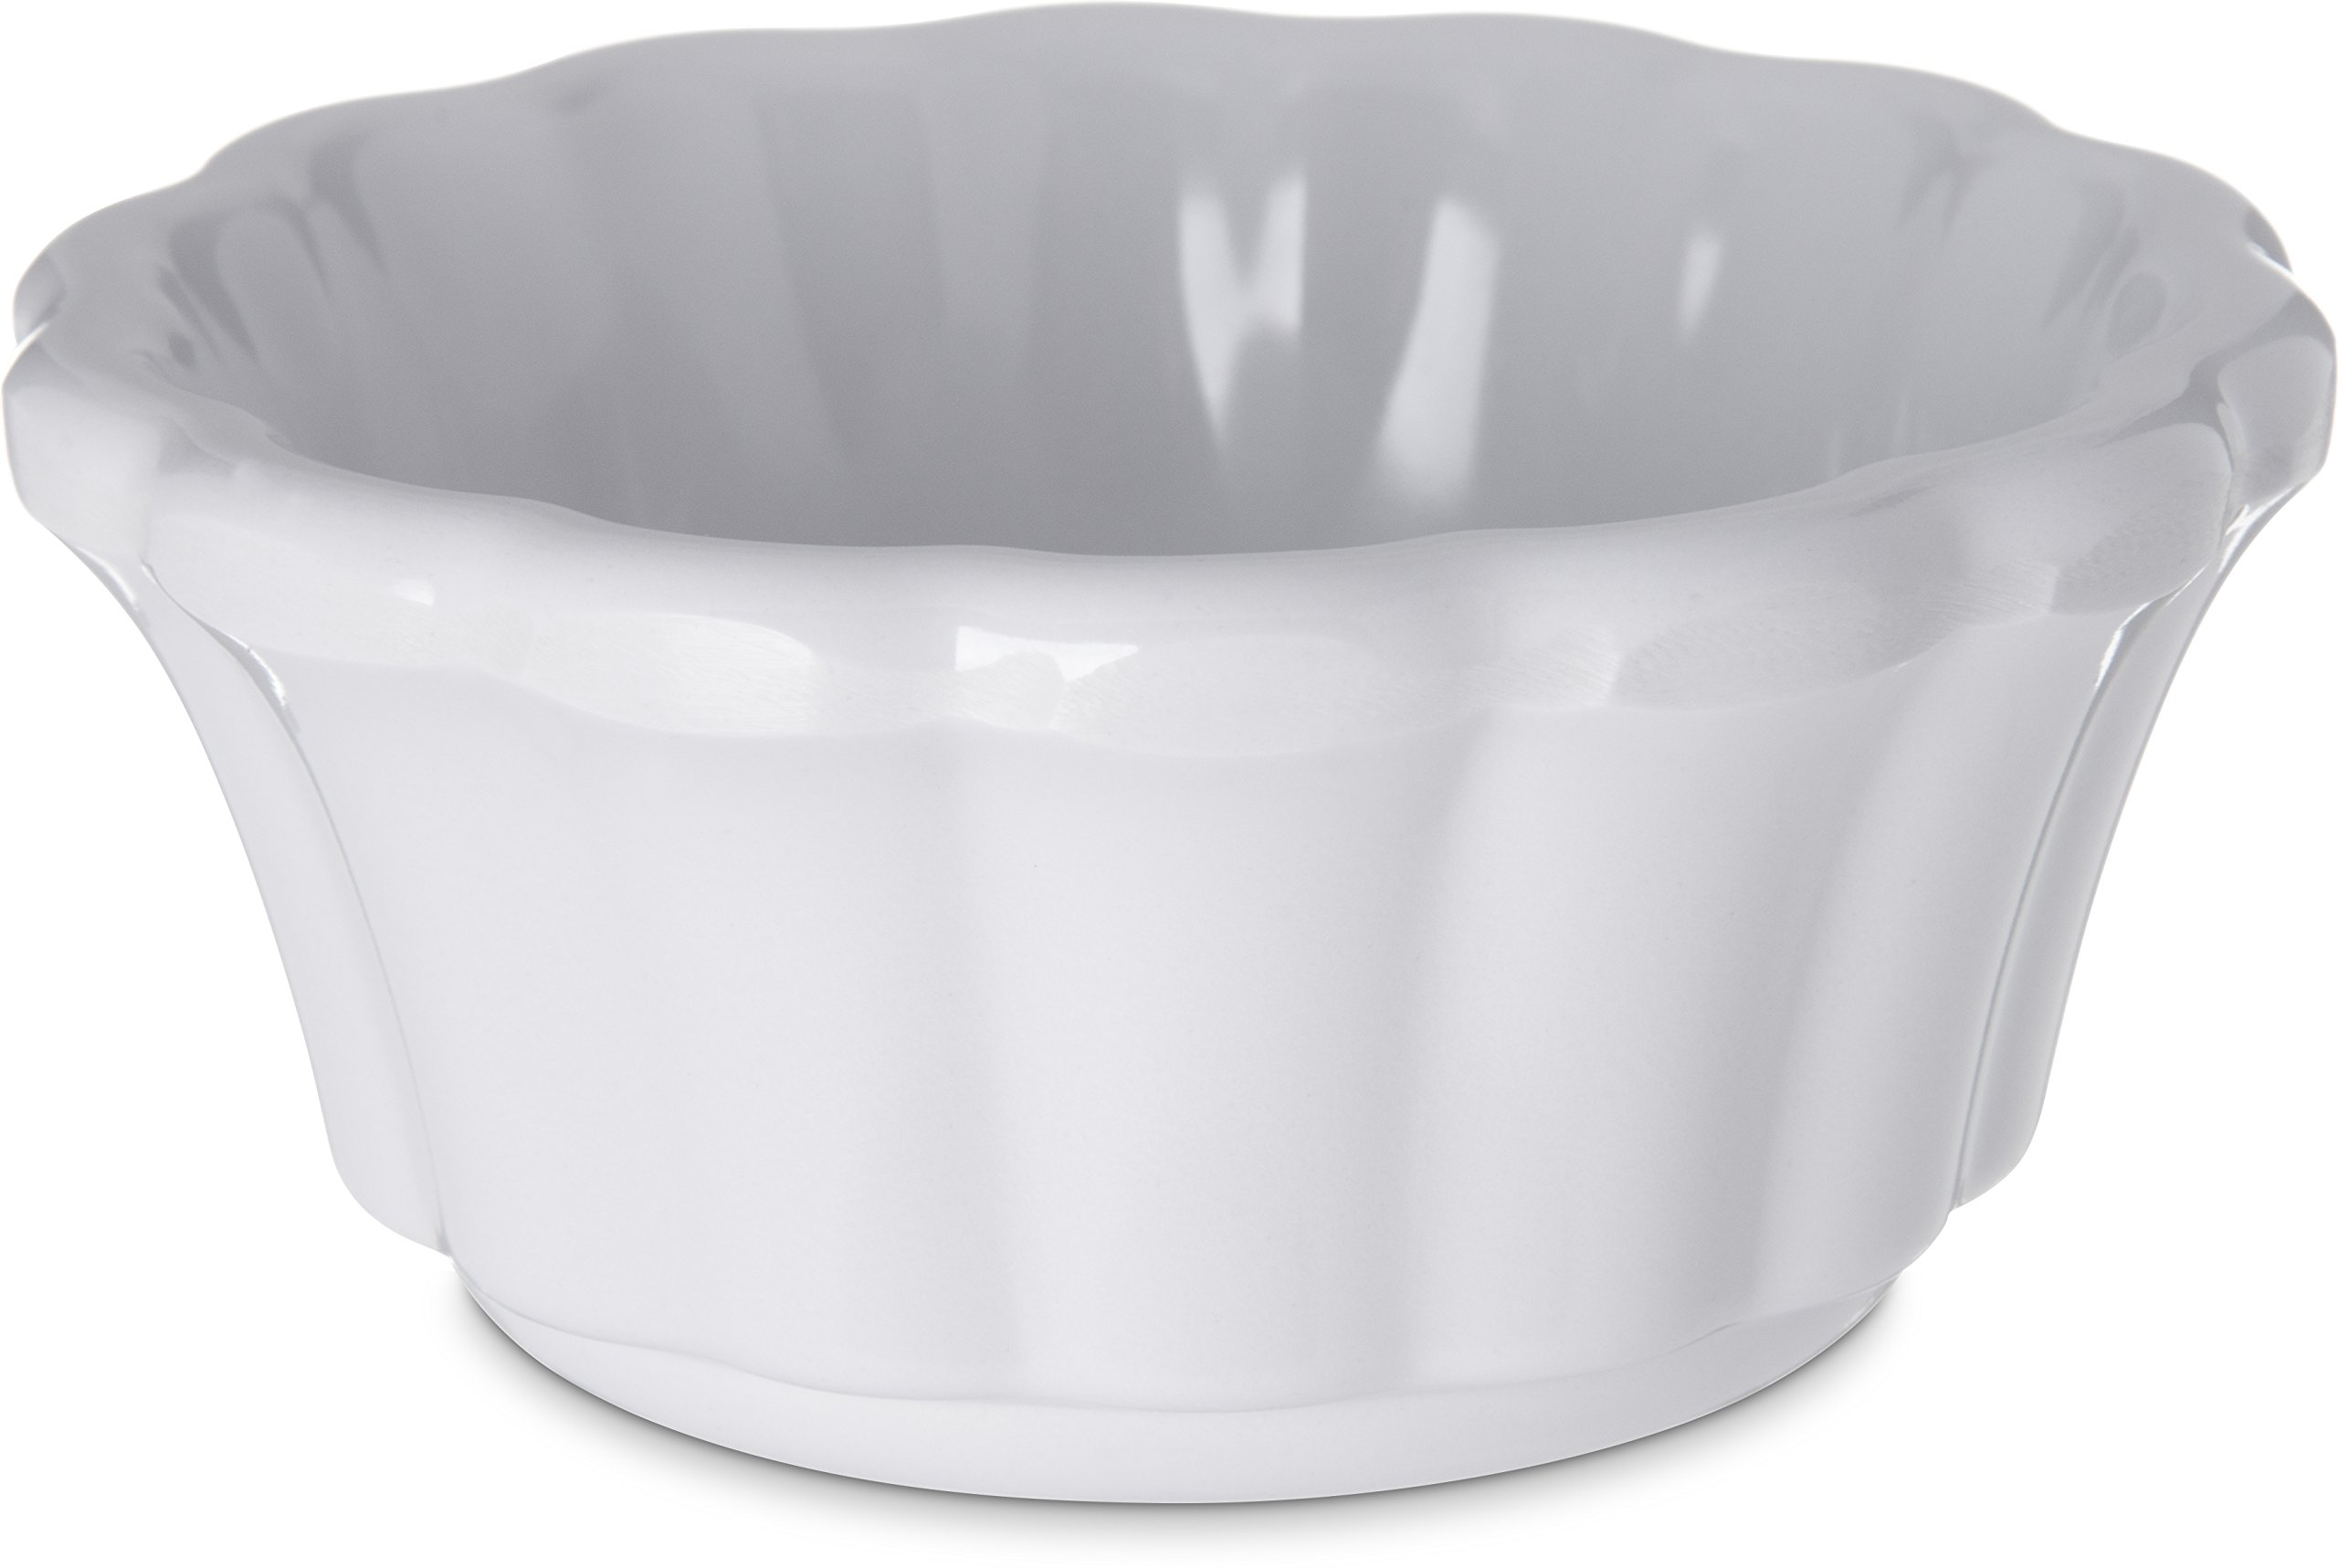 Carlisle 4394402 Melamine Scalloped Ramekin, 3 oz, White (Pack of 48)